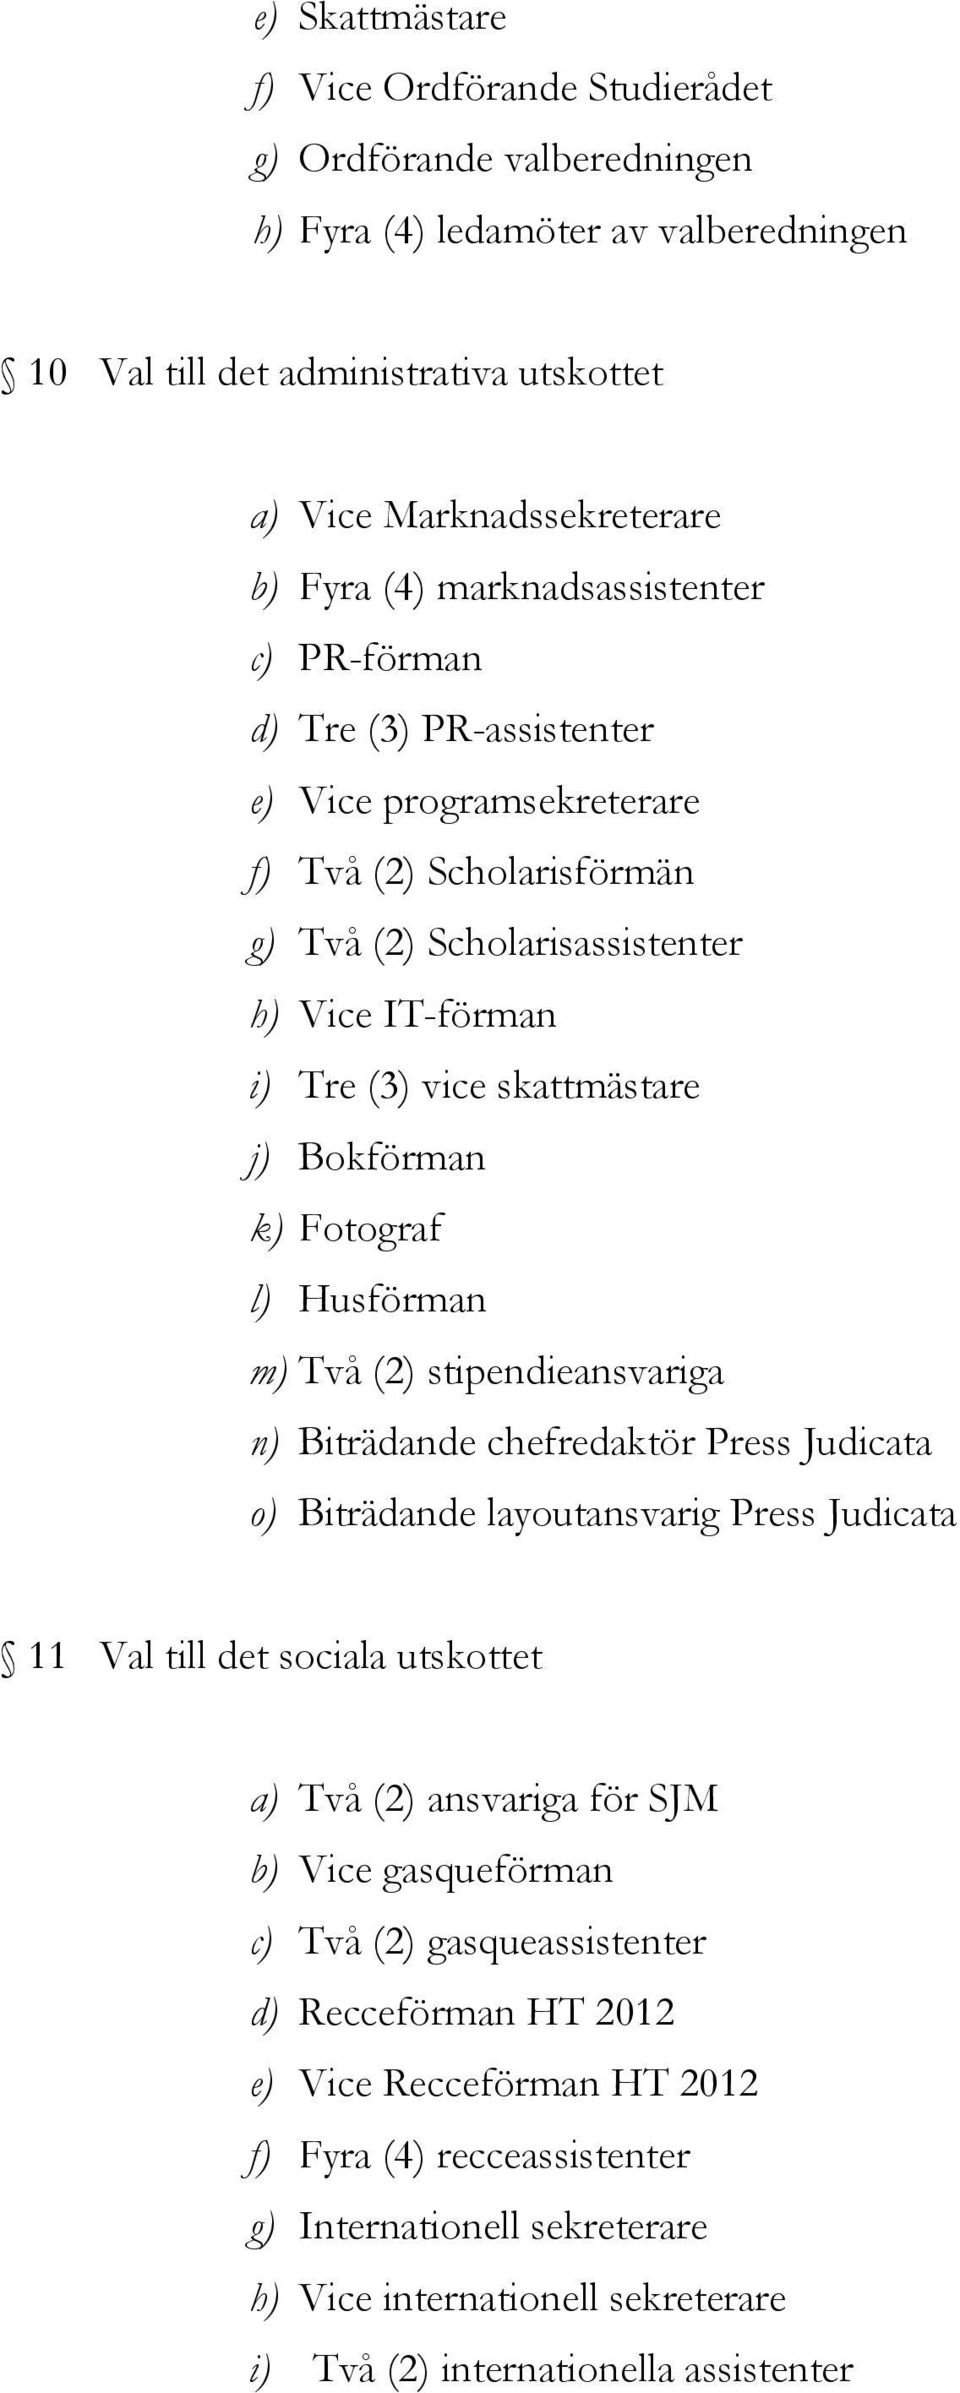 Bokförman k) Fotograf l) Husförman m) Två (2) stipendieansvariga n) Biträdande chefredaktör Press Judicata o) Biträdande layoutansvarig Press Judicata 11 Val till det sociala utskottet a) Två (2)